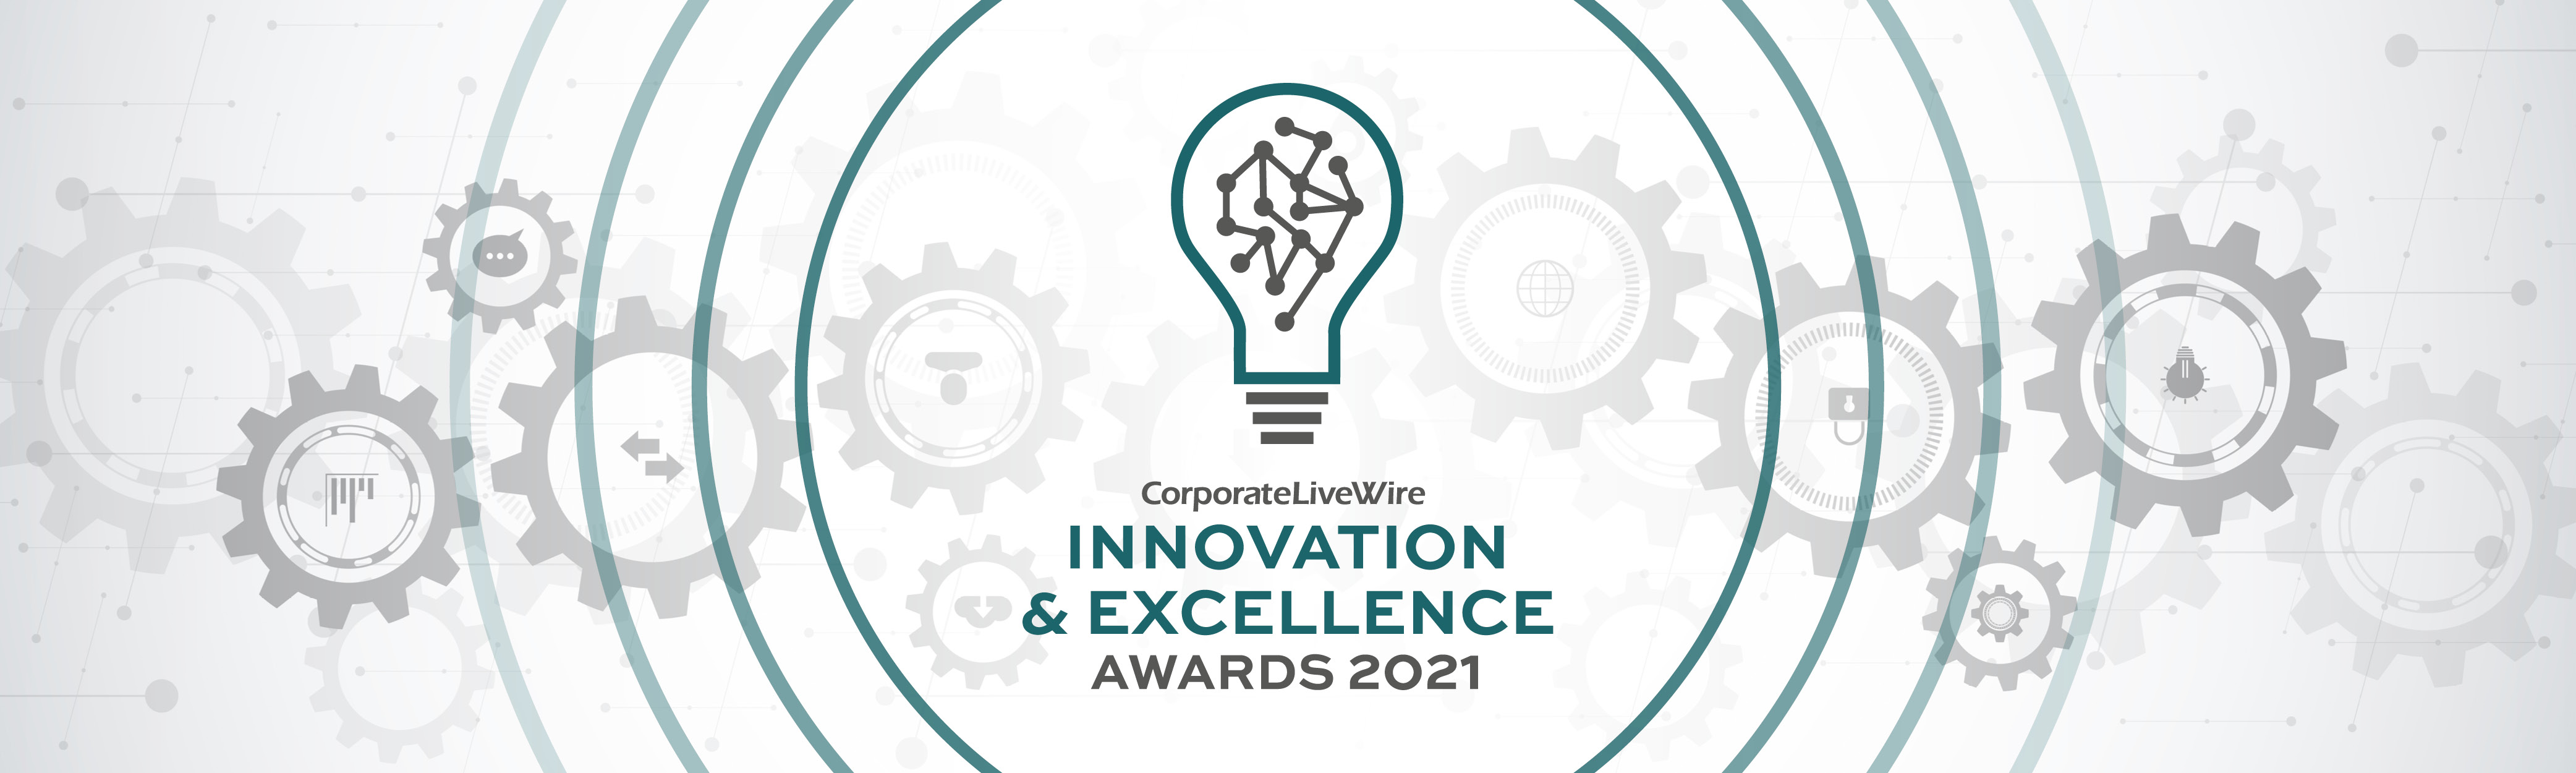 Innovation & Excellence Awards 2021